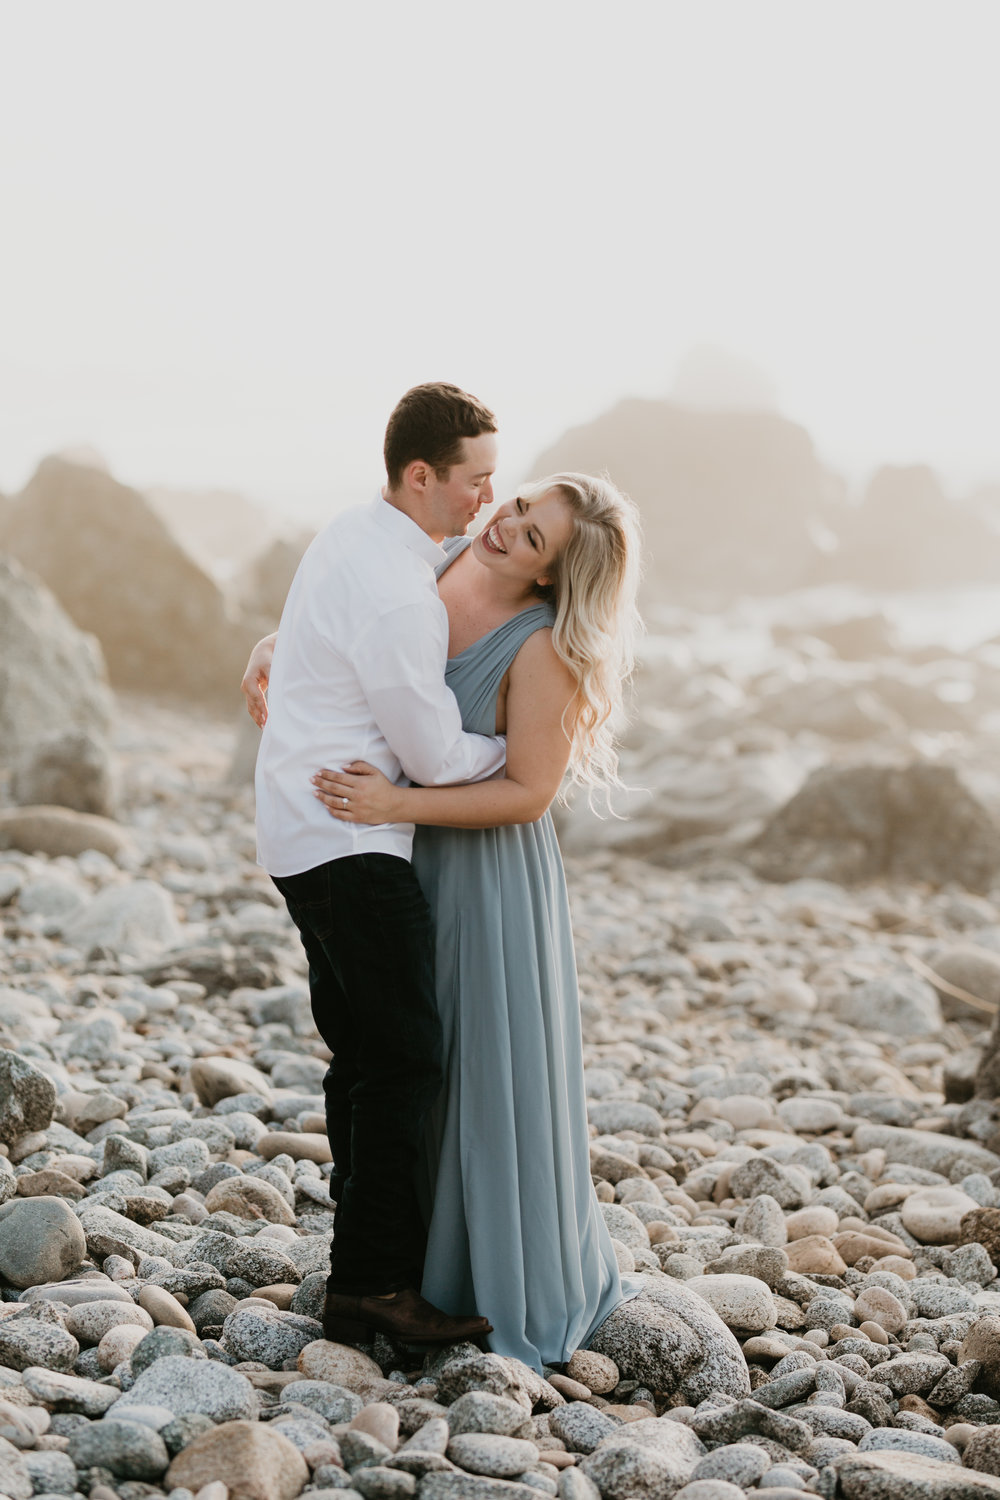 Nicole-Daacke-Photography-big-sur-garrapatta-state-park-adventurous-engagement-session-bixy-bridge-elopement-big-sur-wedding-photographer-monterey-elopement-photographer-california-golden-sunset-coast-photos-32.jpg